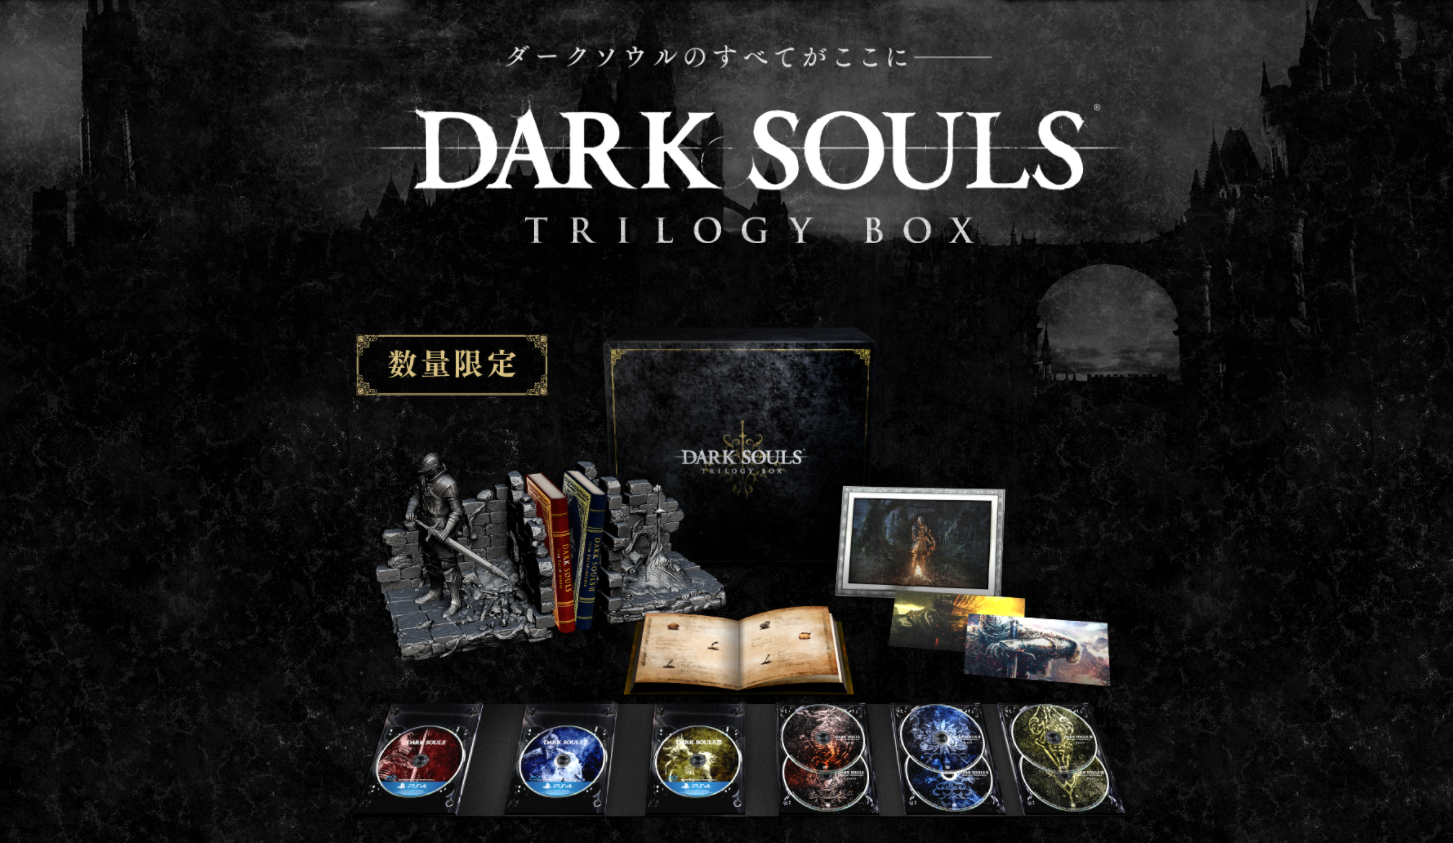 Dark Souls Remastered For Ps4 Pc And Xbox One Announced Bandai Namco Has Confirmed That Dark Souls Remastered Is Being Released F Dark Souls Xbox One Trilogy